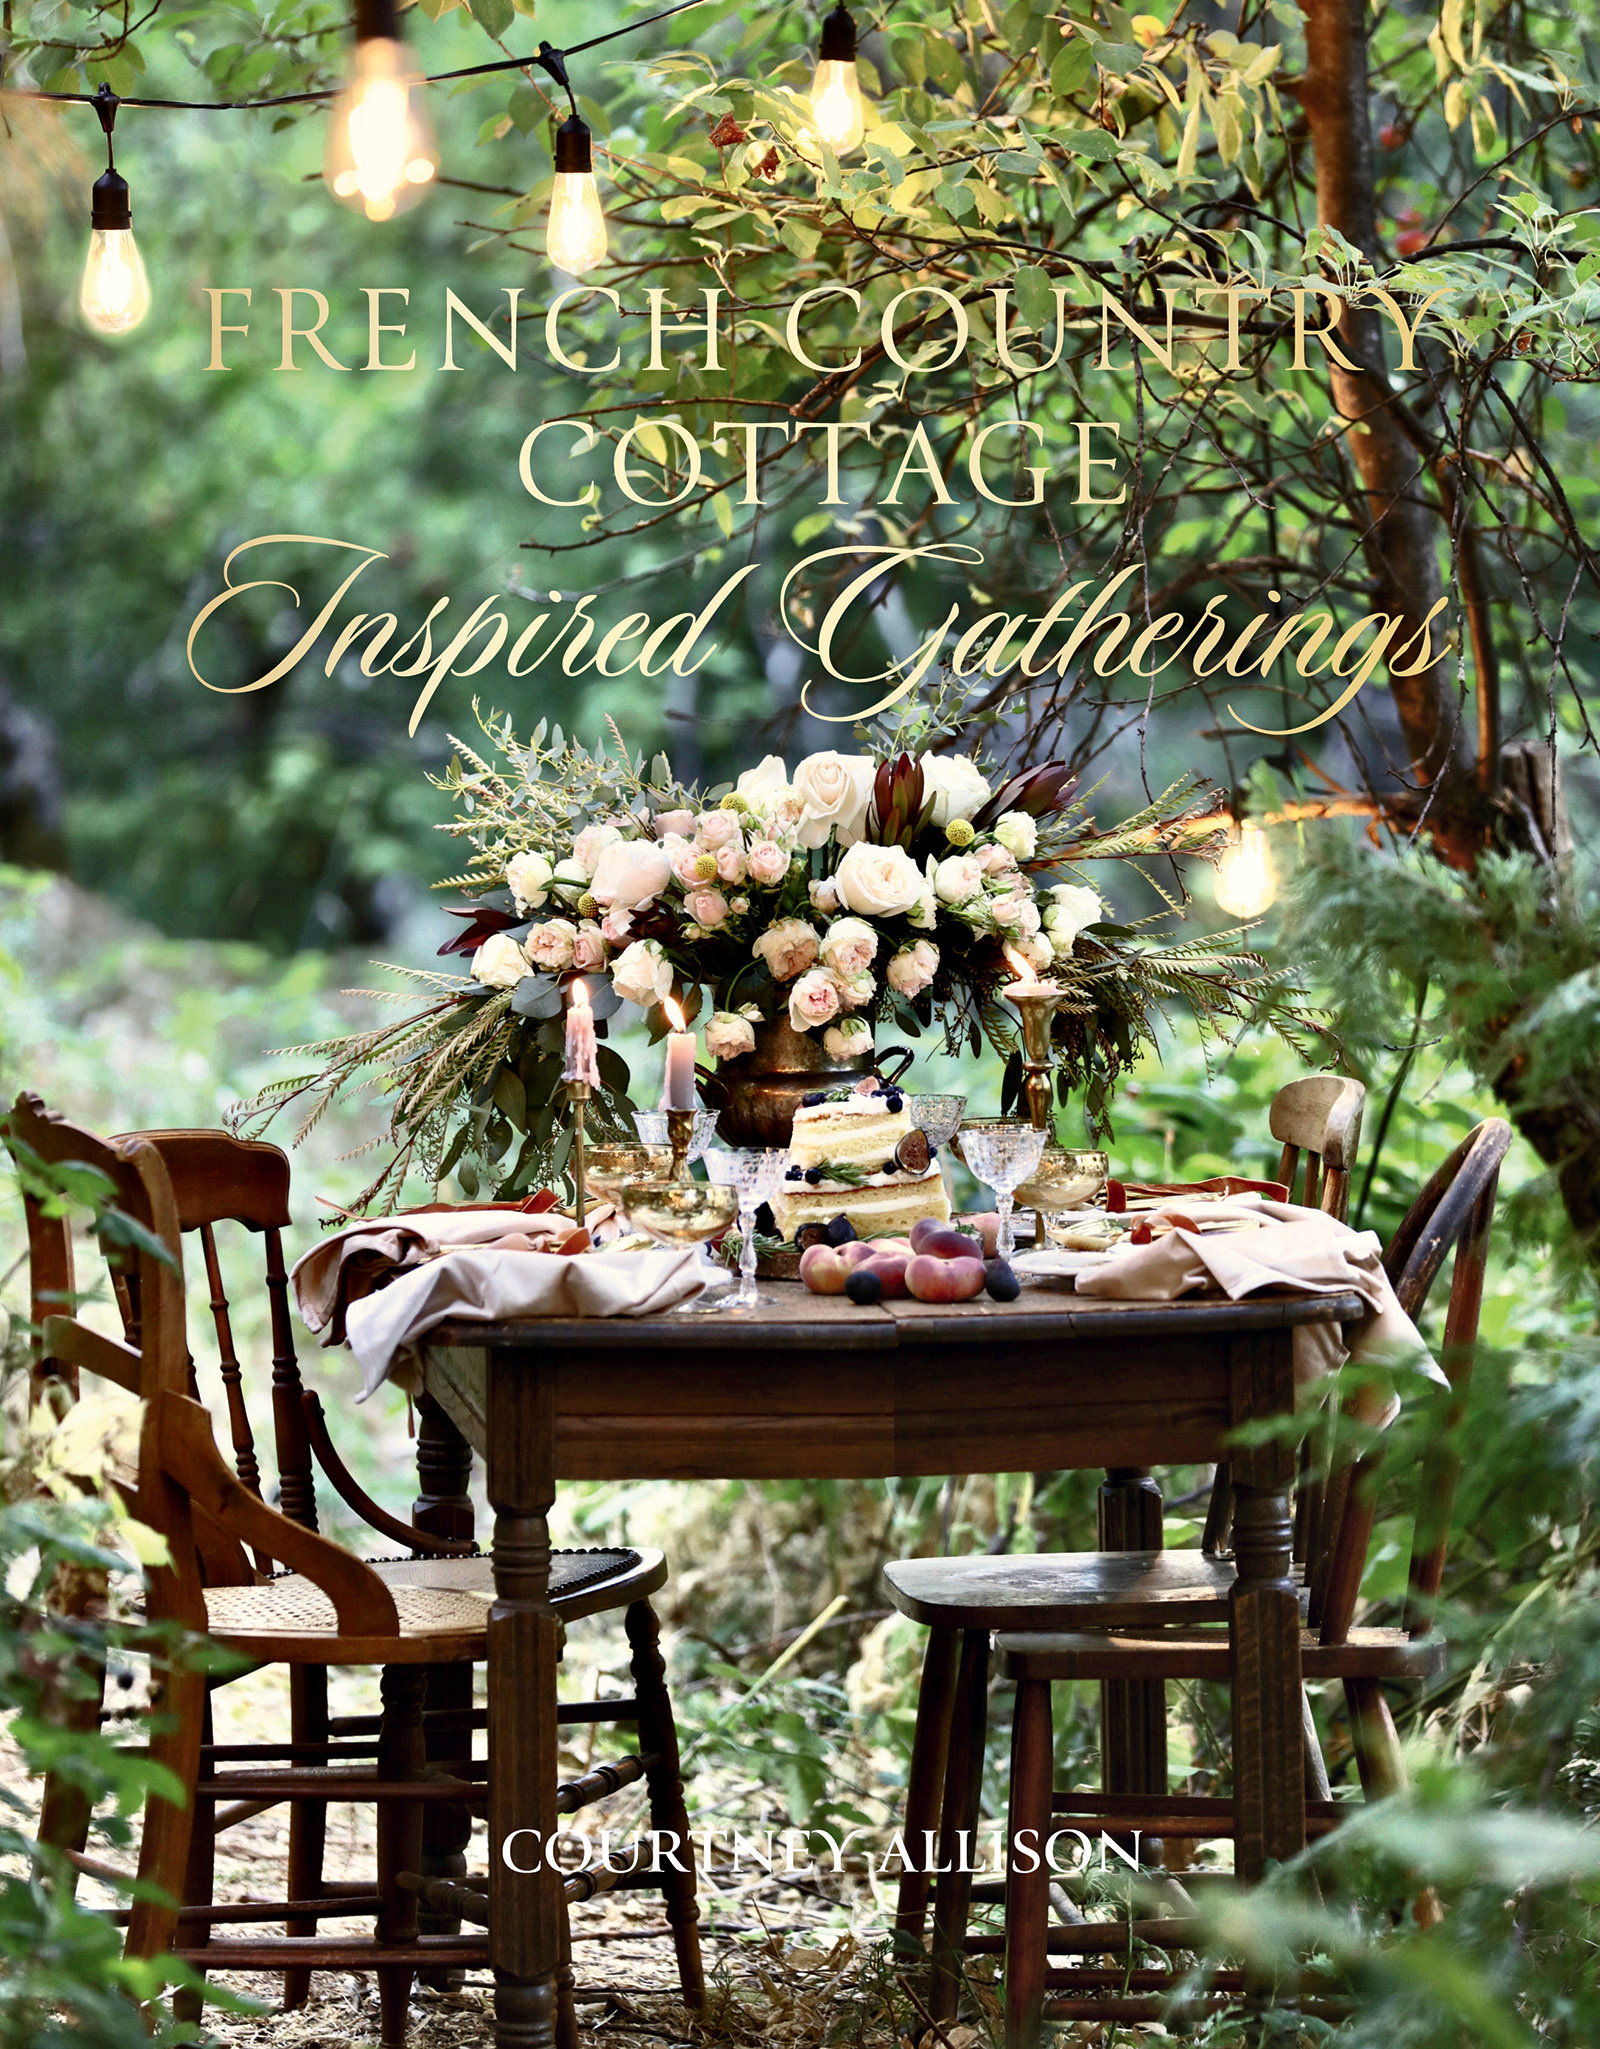 French romantic table setting in evening string lights / Photograph from French Country Cottage Inspired Gatherings by Courtney Allison. Reprinted by permission of Gibbs Smith Publishing.